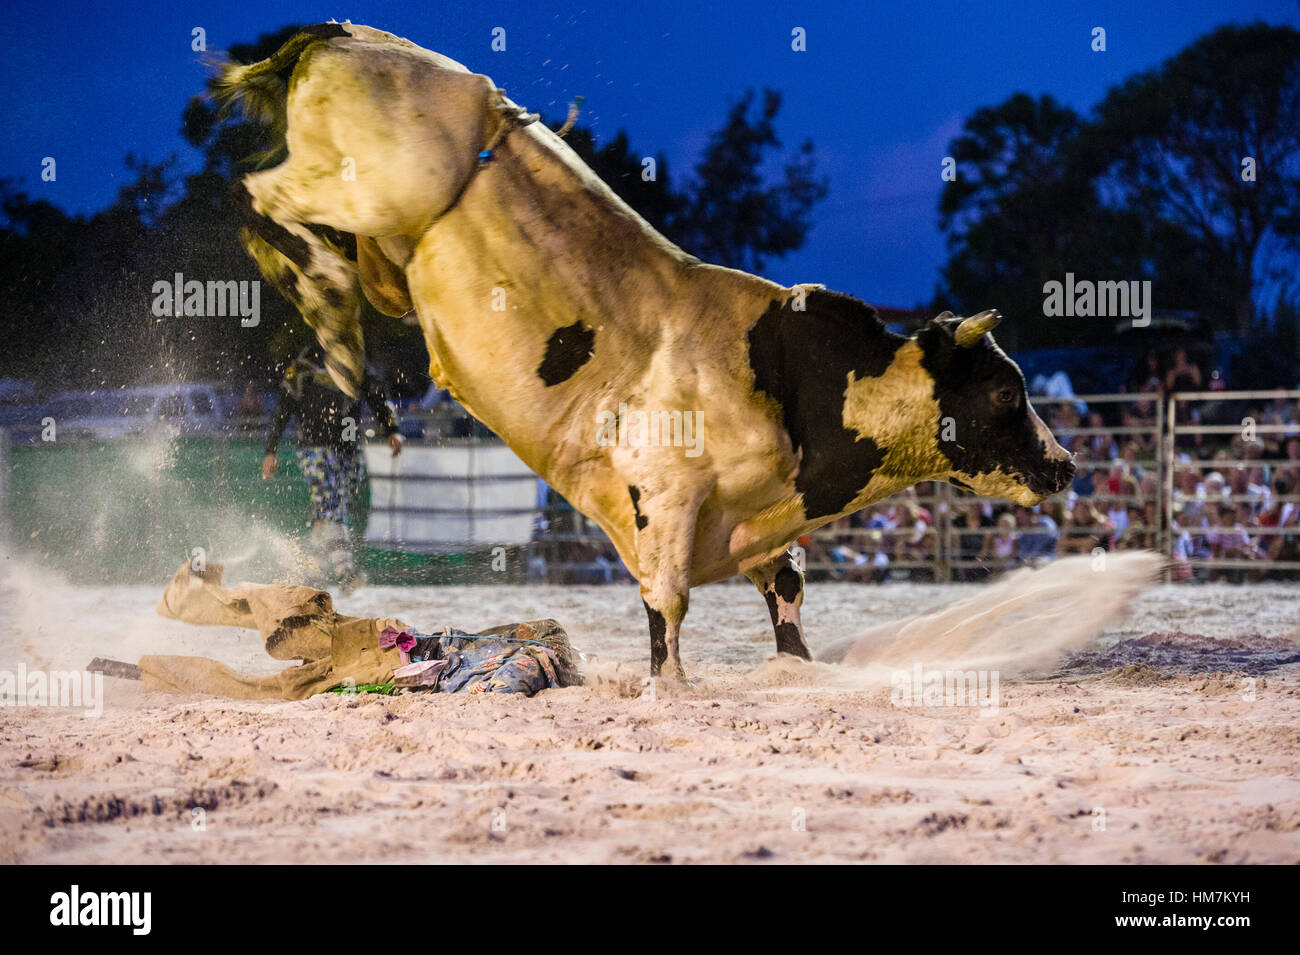 A rodeo bull attacks a scarecrow with it's hooves after losing a rider. - Stock Image